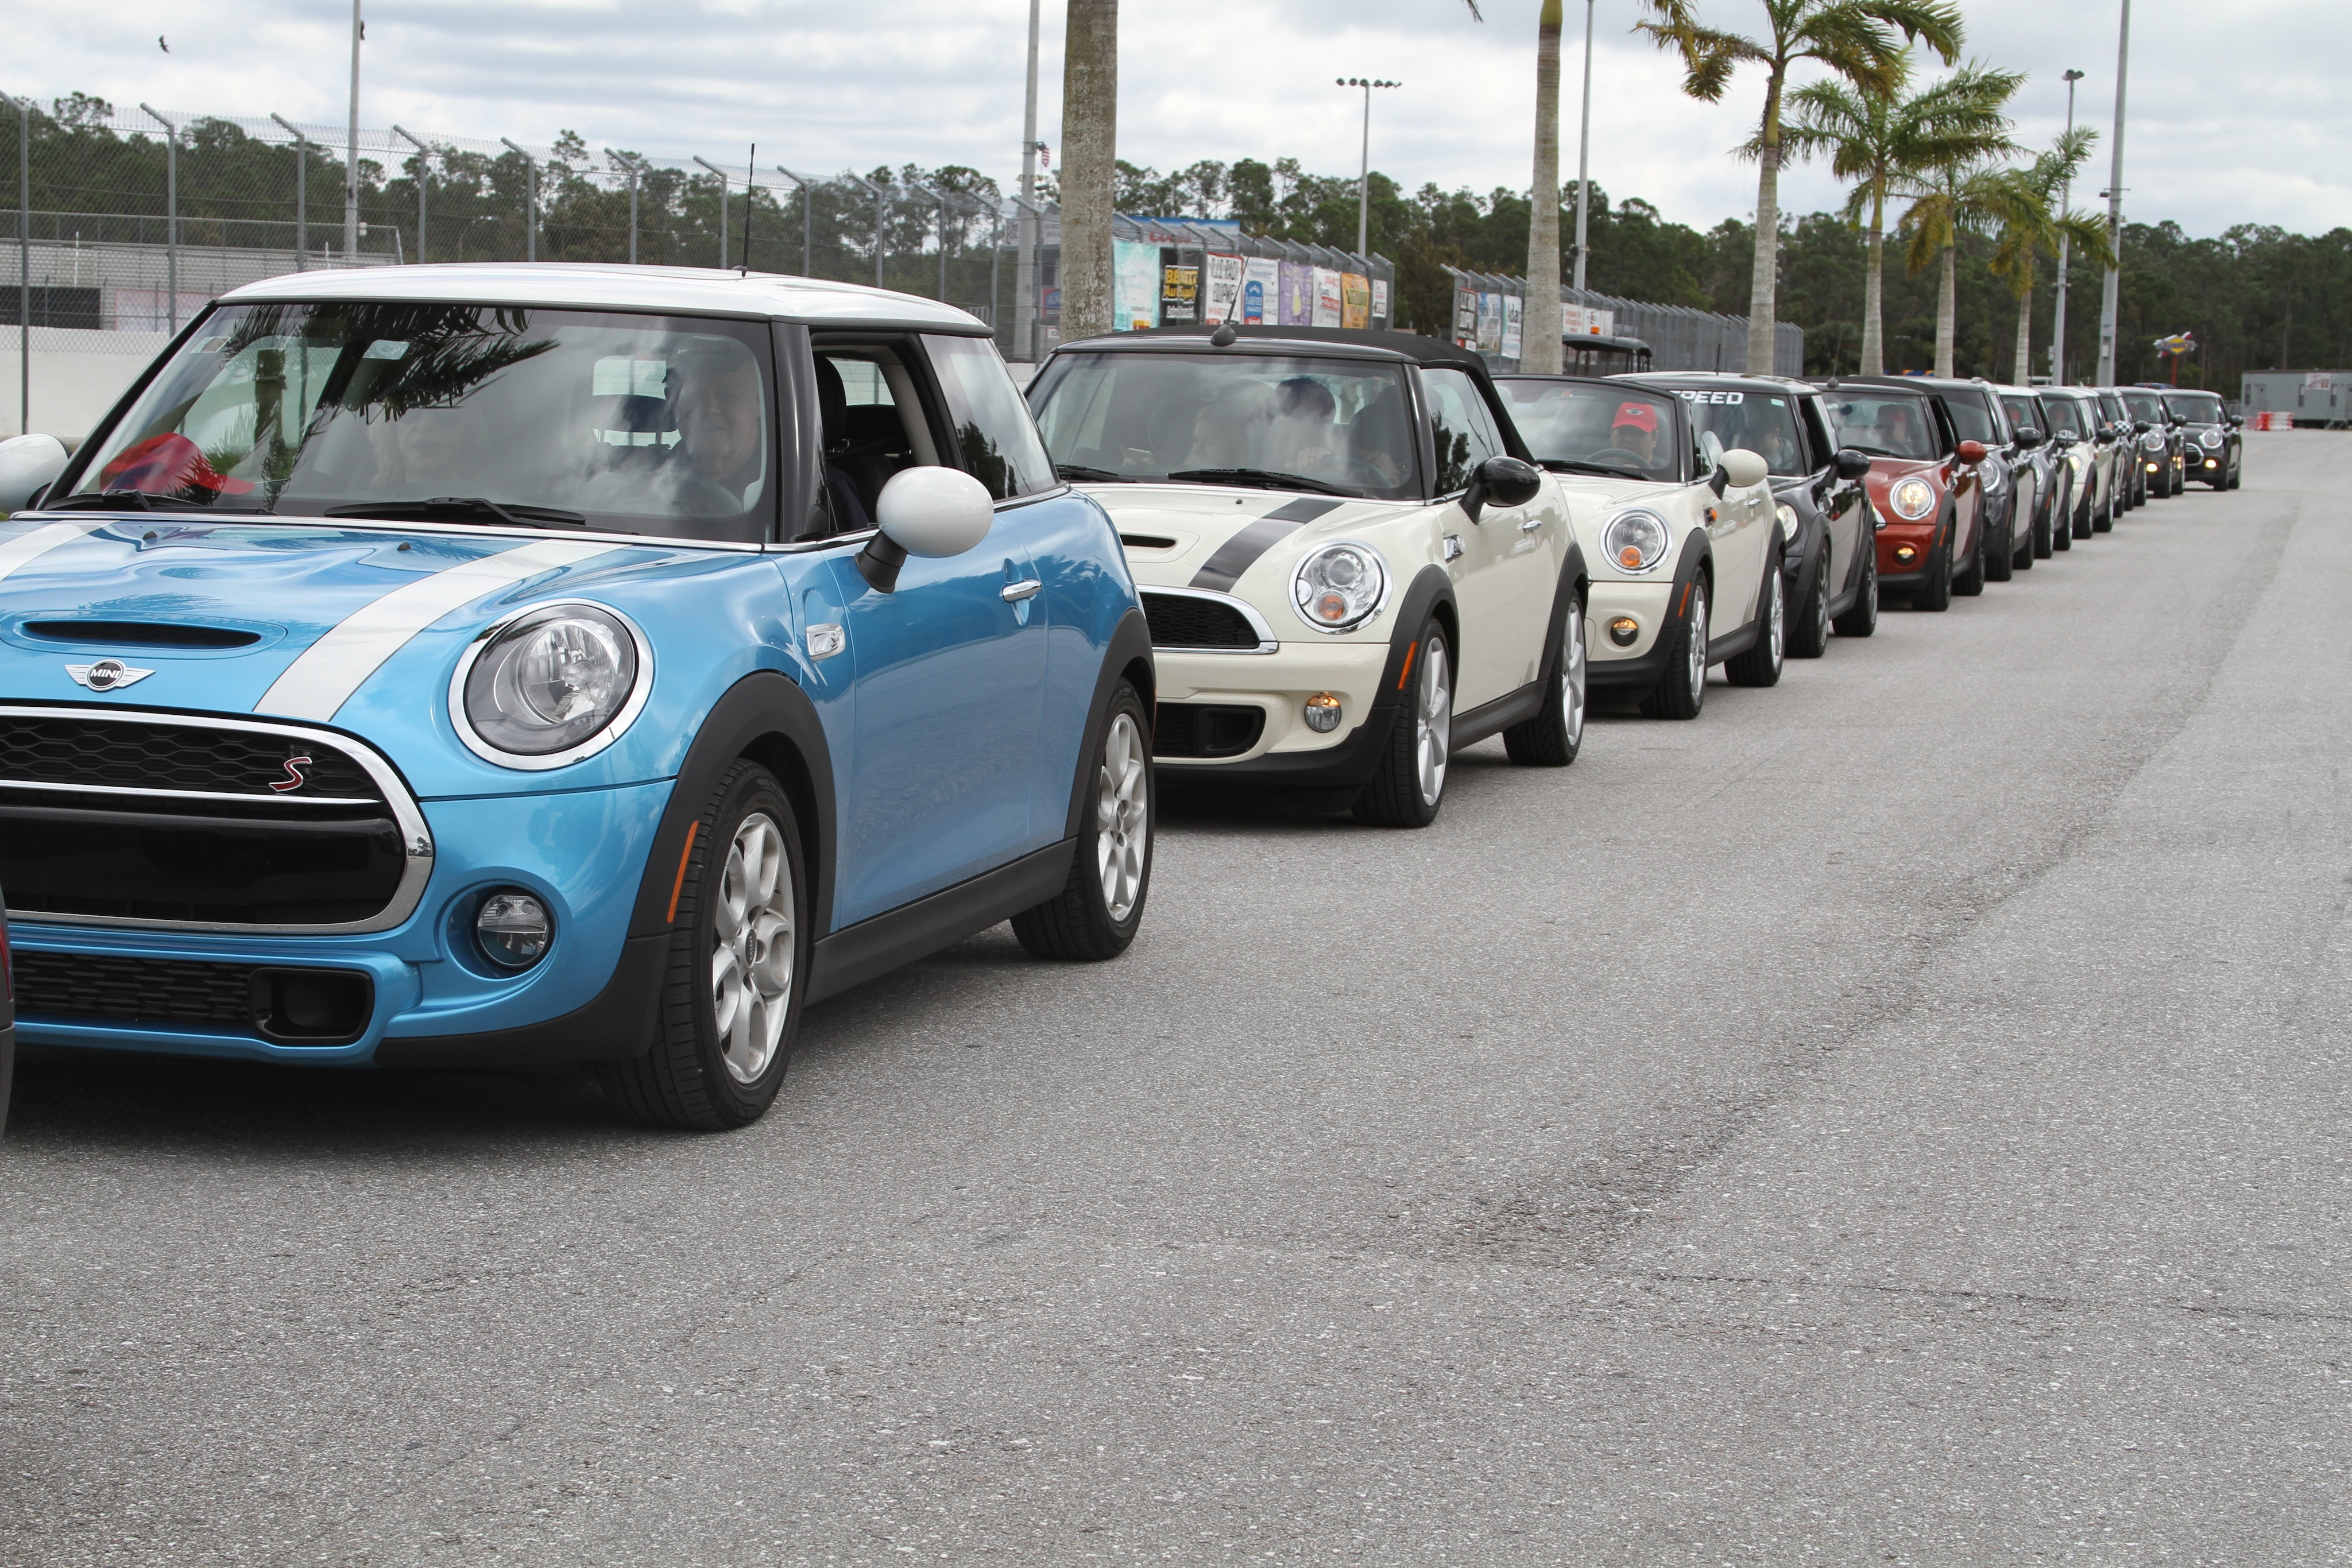 Mini Cooper S Owners Club Bmw Mini Owners Club Specialist Car And Vehicle